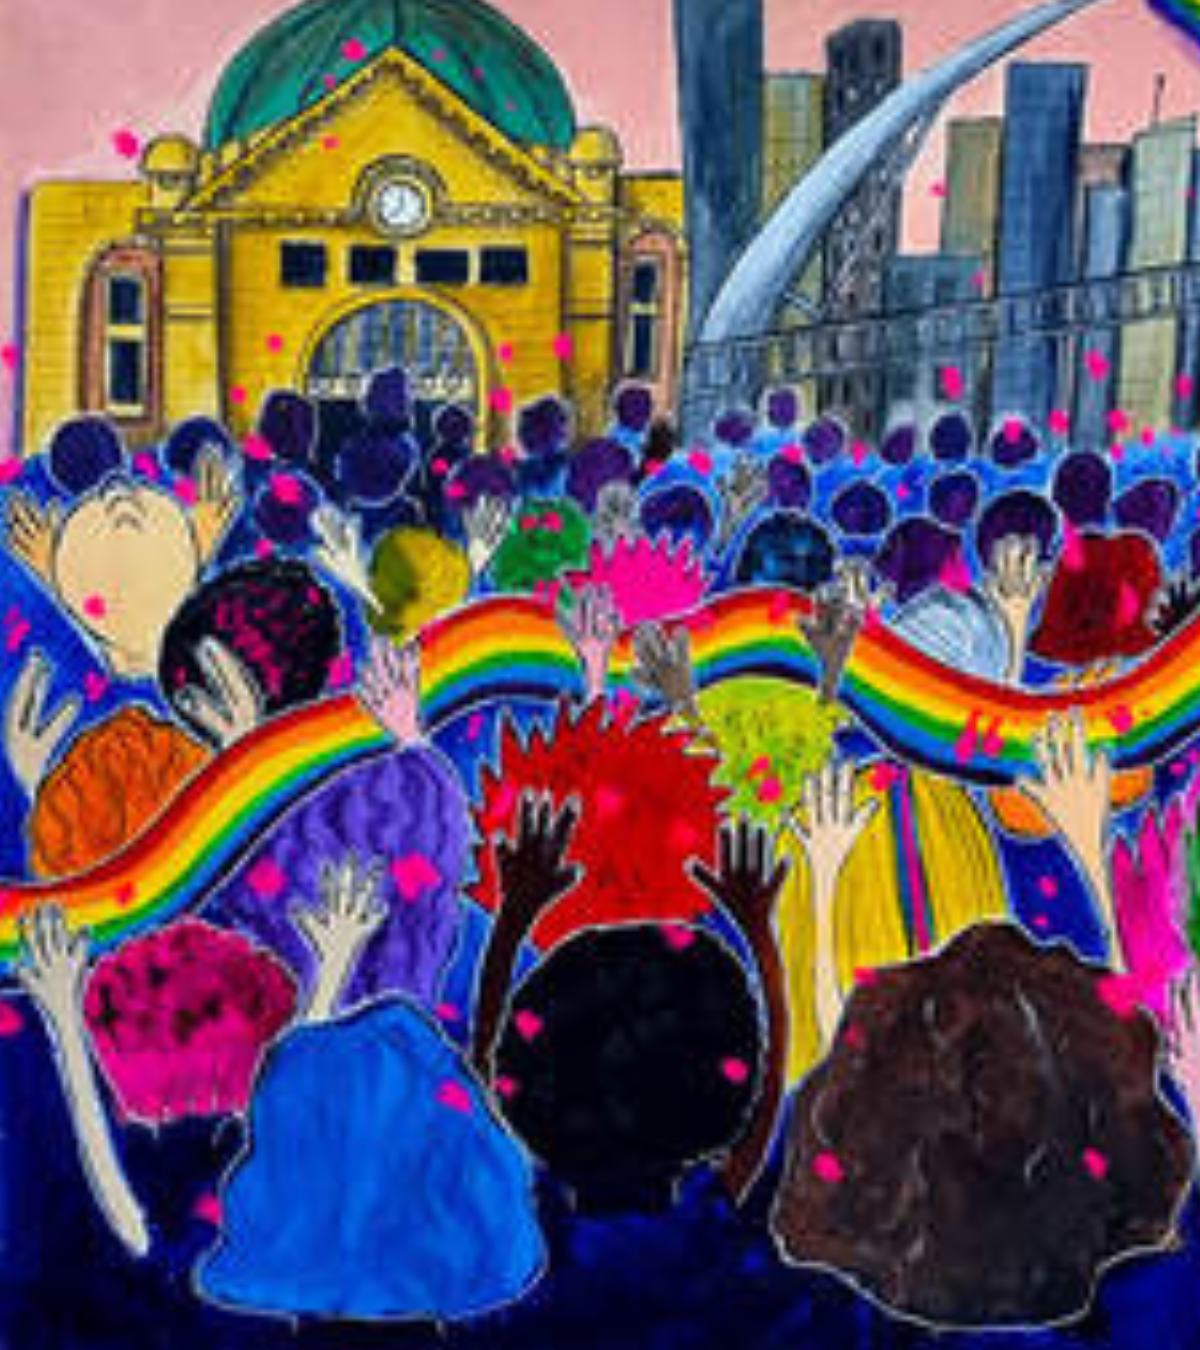 Artwork of a crowd of people with their hands in the air. In the distance is the Flinders St Railway station. There is a rainbow ribbon flowing over the crowd.